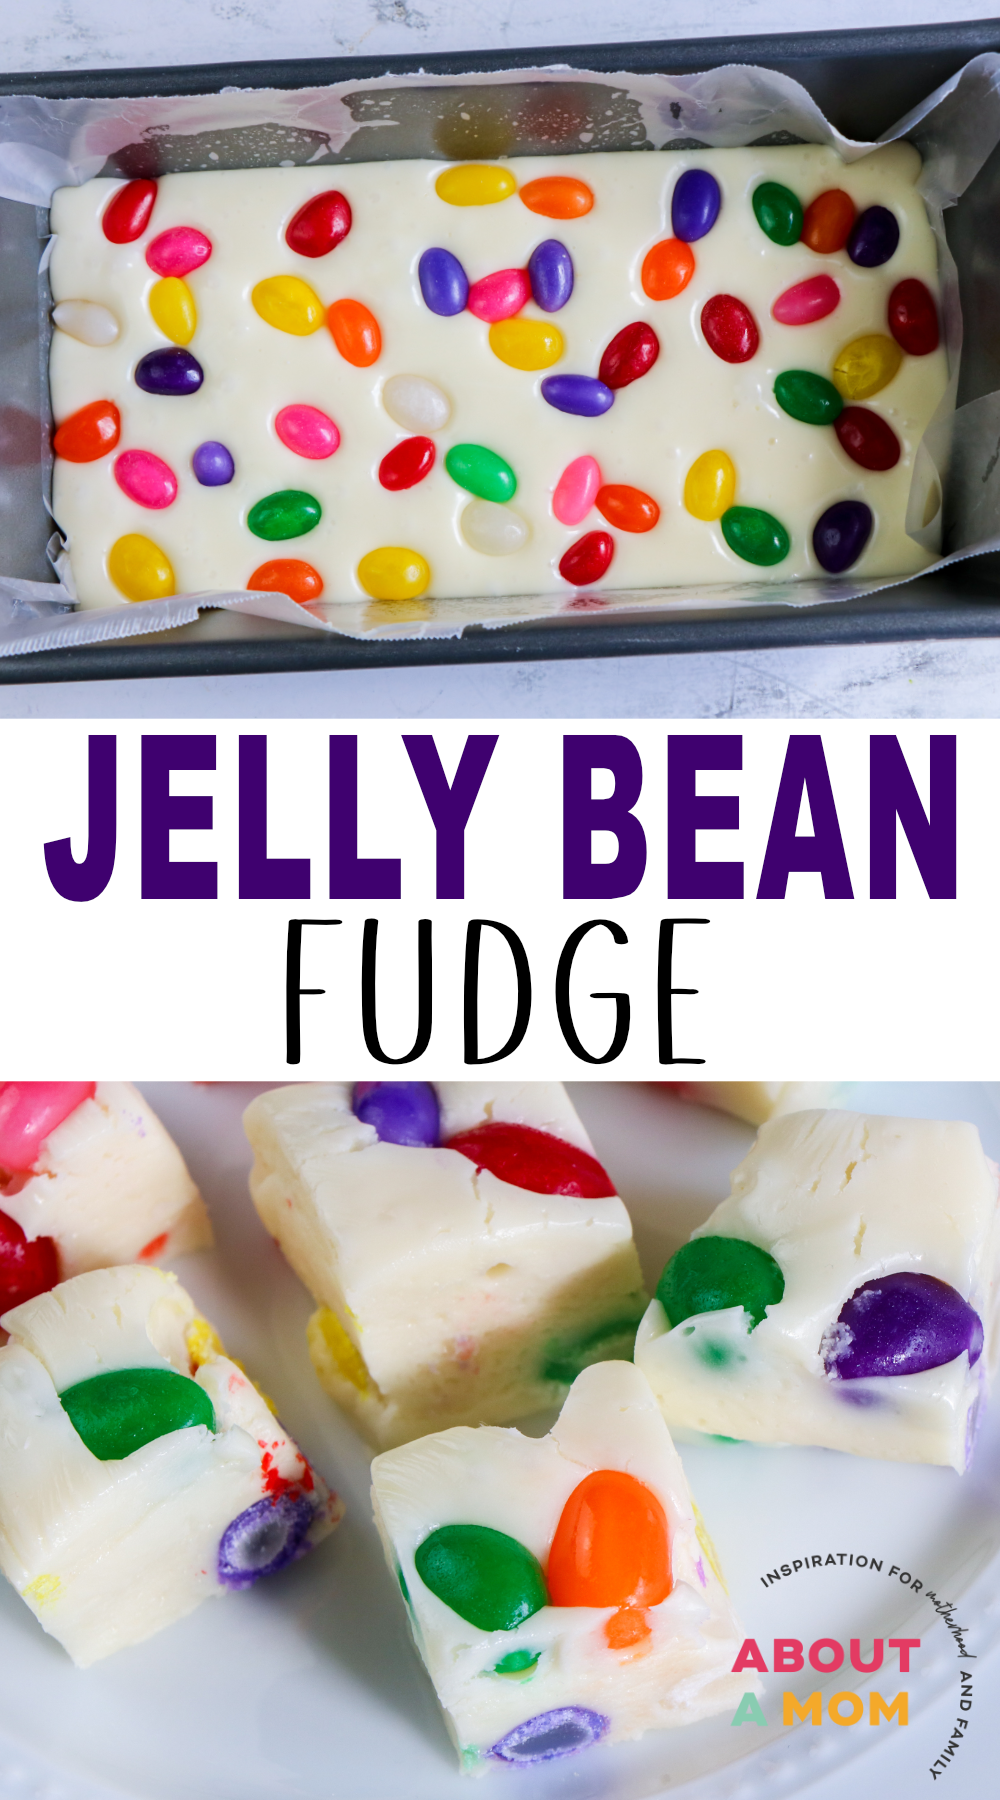 Looking for a sweet Easter treat? This Jelly Bean Fudge is just as delicious as it is beautiful! The beans pop from the fudge like brightly colored Easter eggs. Jelly Bean Fudge is simple to make and the perfect addition to your Easter dessert table.